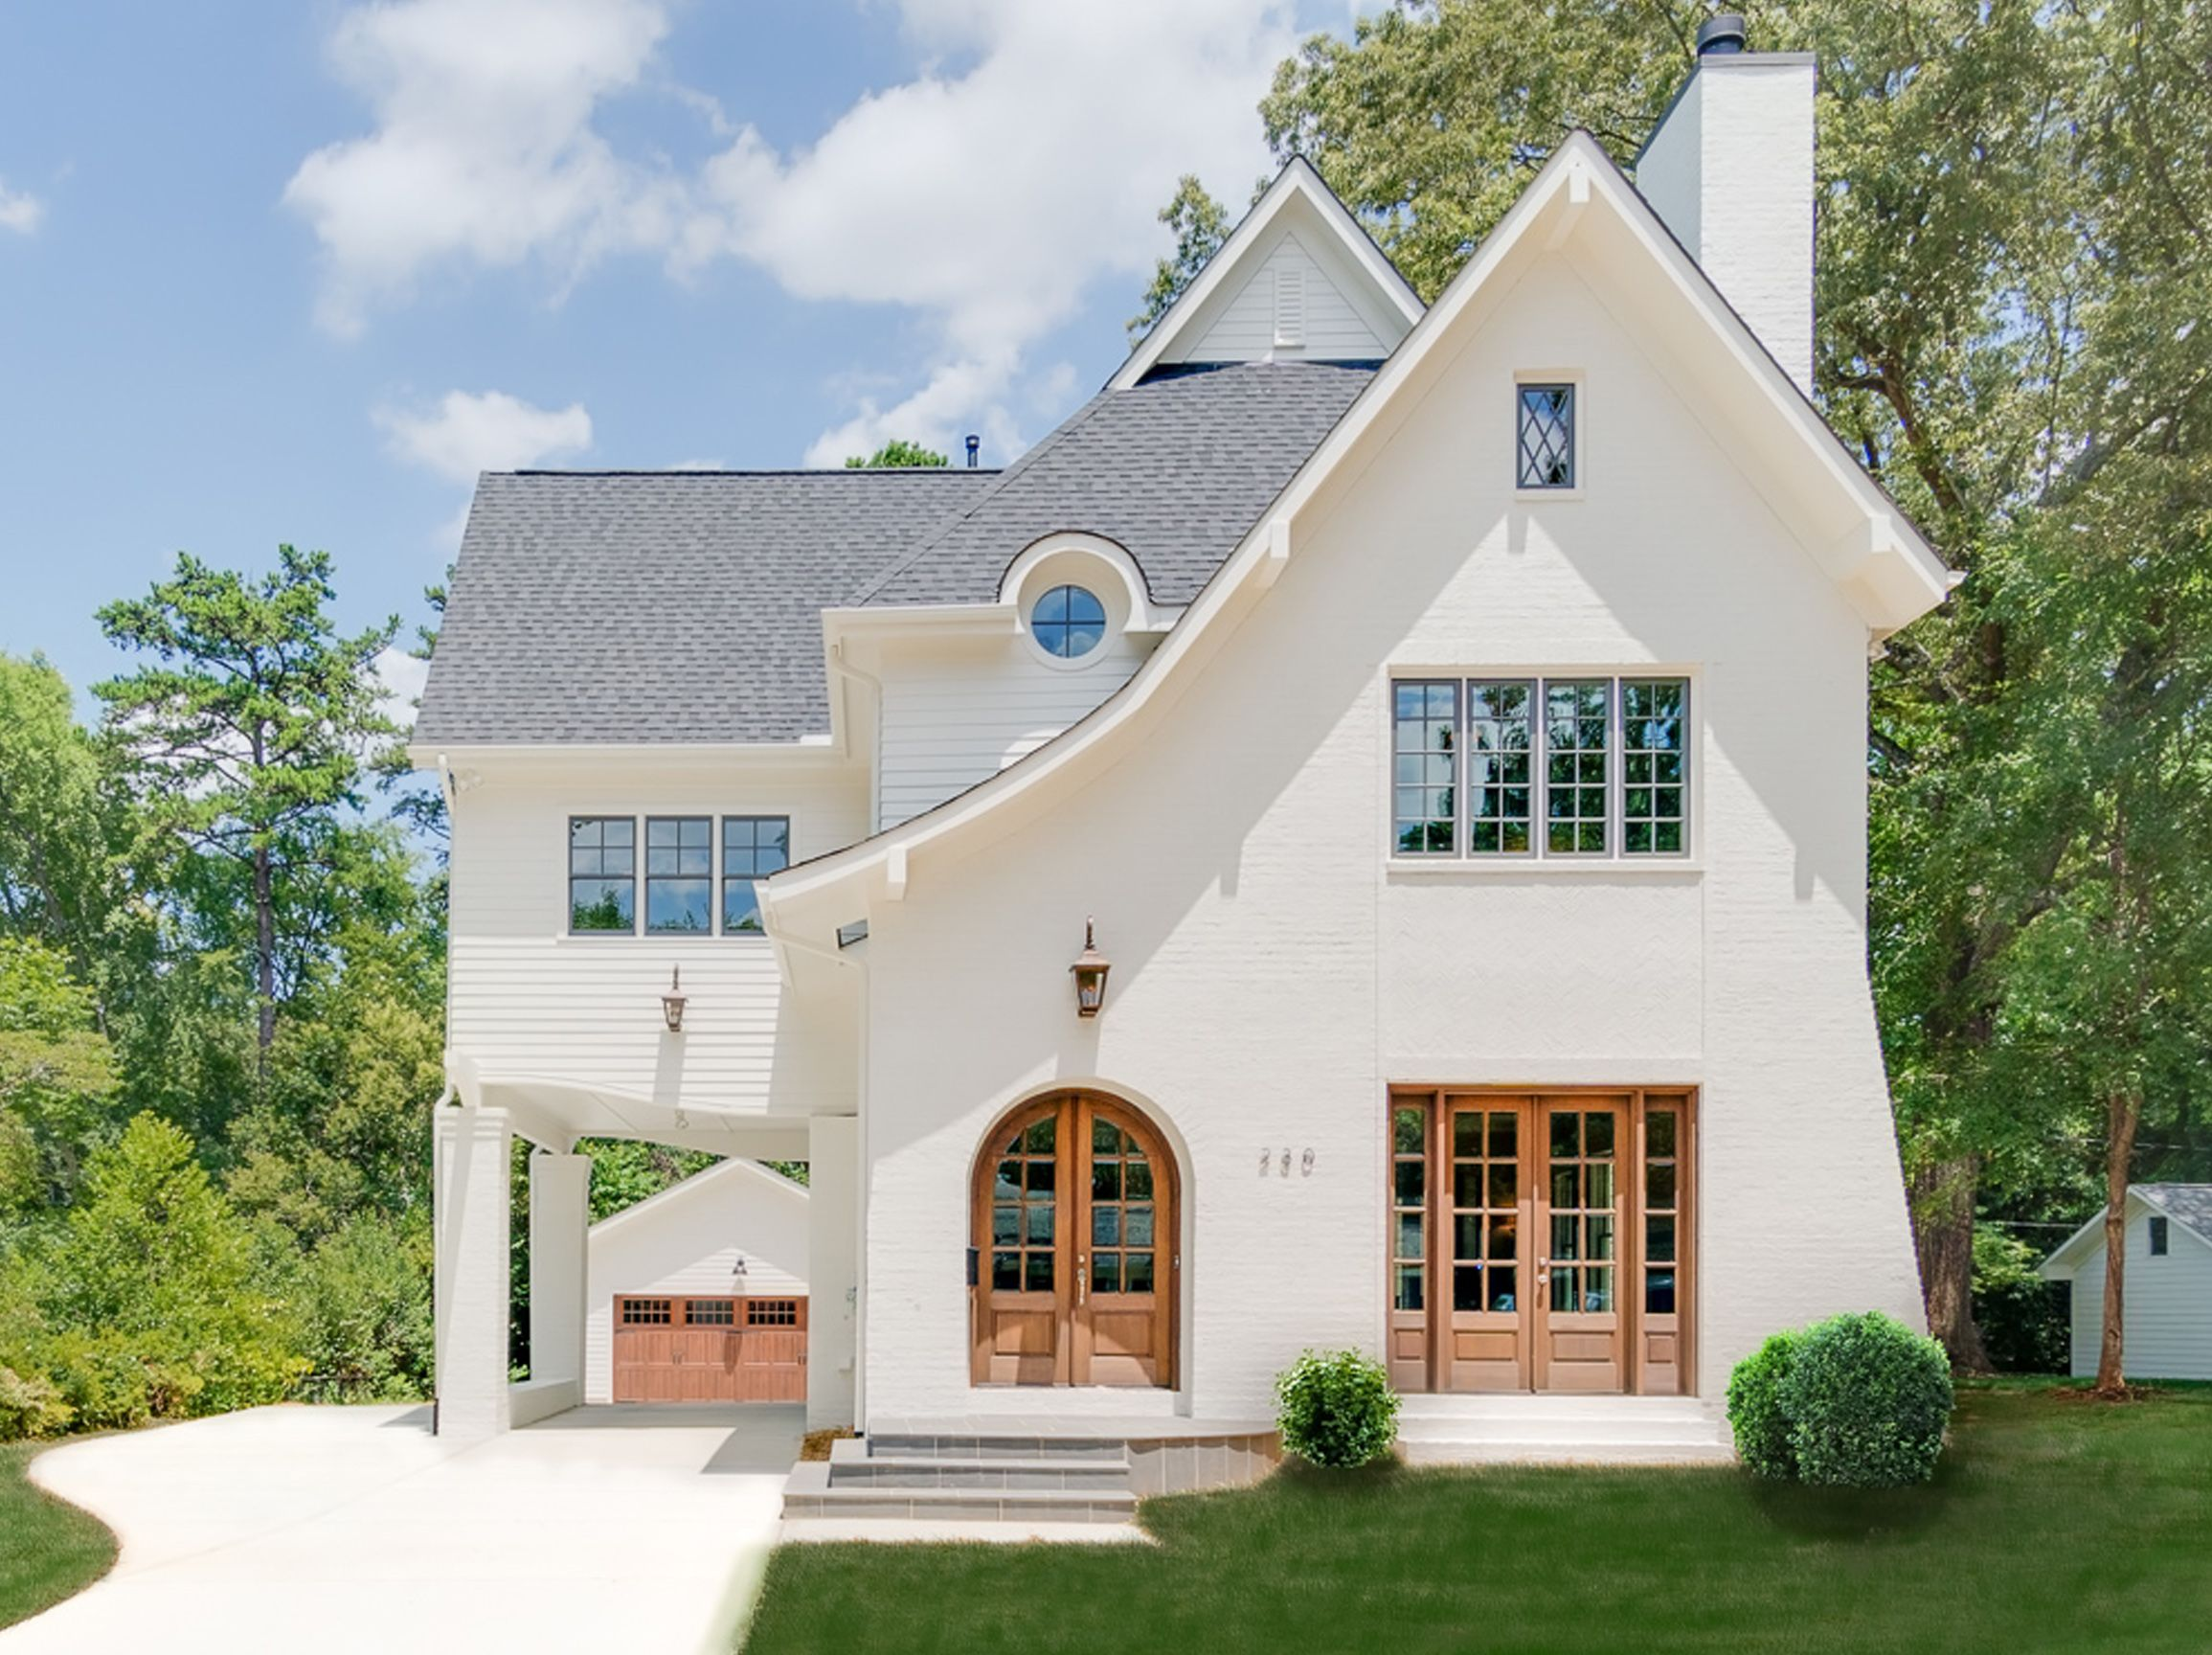 Custom home under contract in cotswold charlotte nc luxury properties built by local home builder grandfather homes